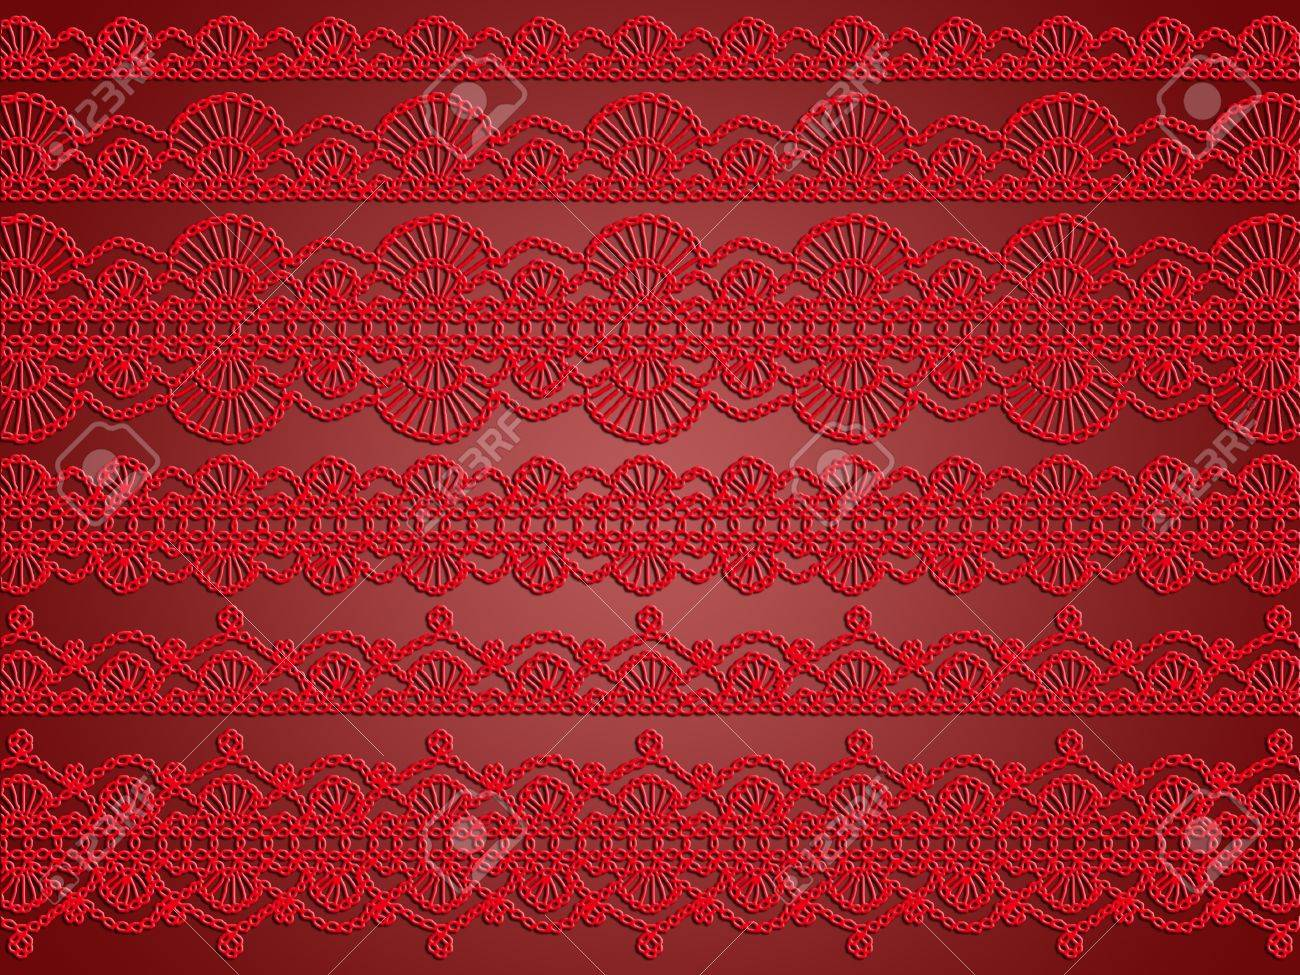 Red crochet laces selection as an elegant xmas background or wallpaper Stock Photo - 12622783